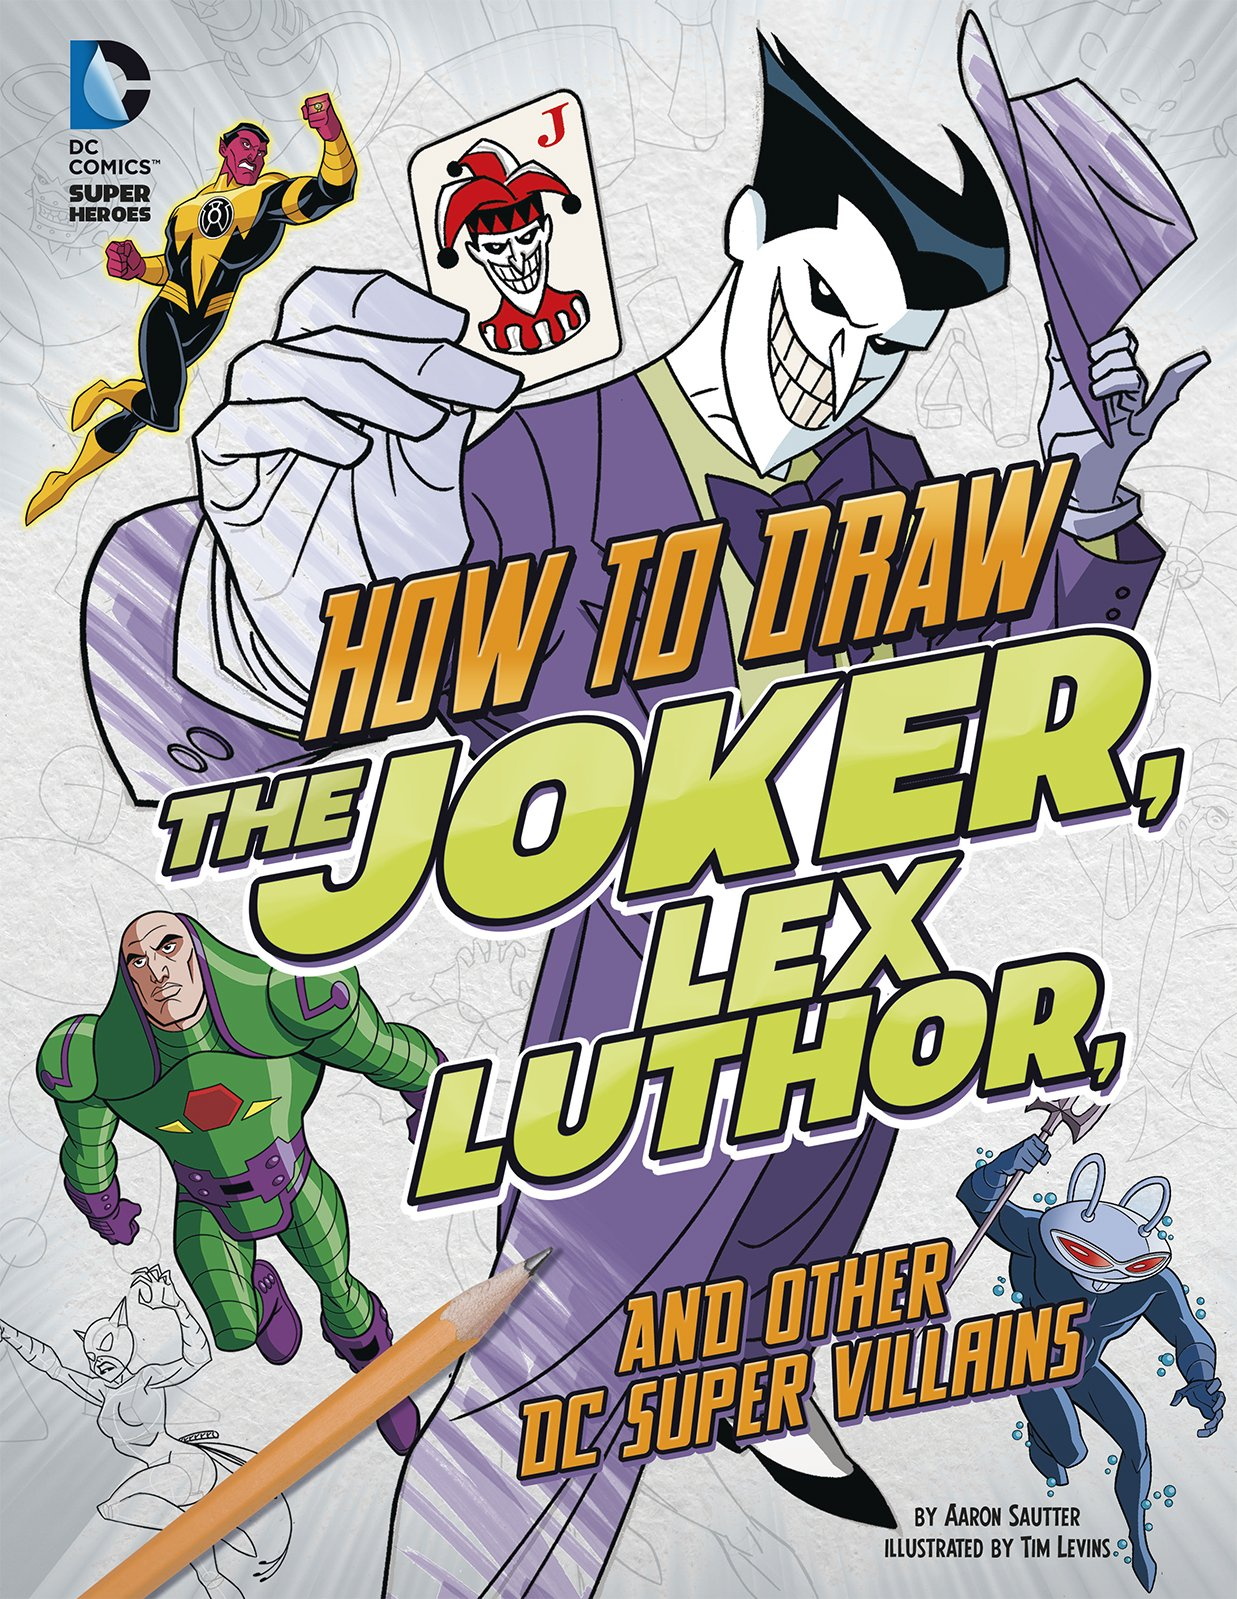 How To Draw The Joker, Lex Luthor, And Other Dc Supervillains (drawing Dc  Super Heroes): Aaron Sautter, Tim Levins: 9781491421550: Amazon: Books